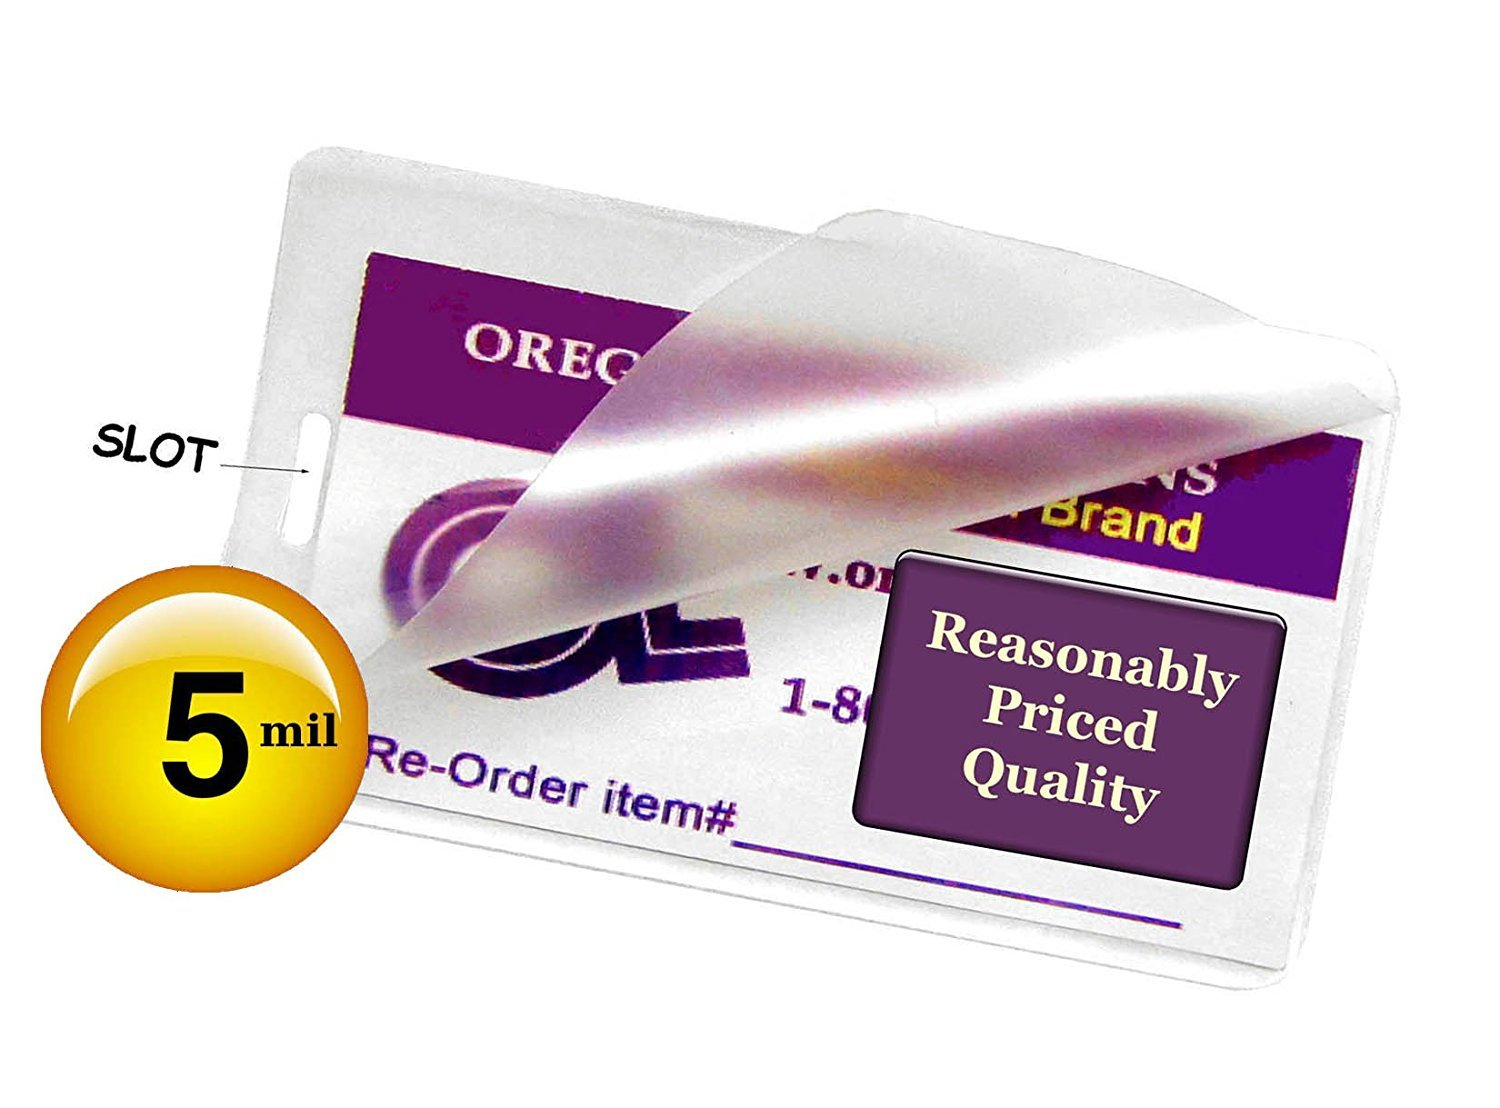 Clear Pack of 1000 Oregon Laminations Premium 5 Mil Luggage Tag size Hot Laminating Pouches With Slot 2-1//2 x 4-1//4